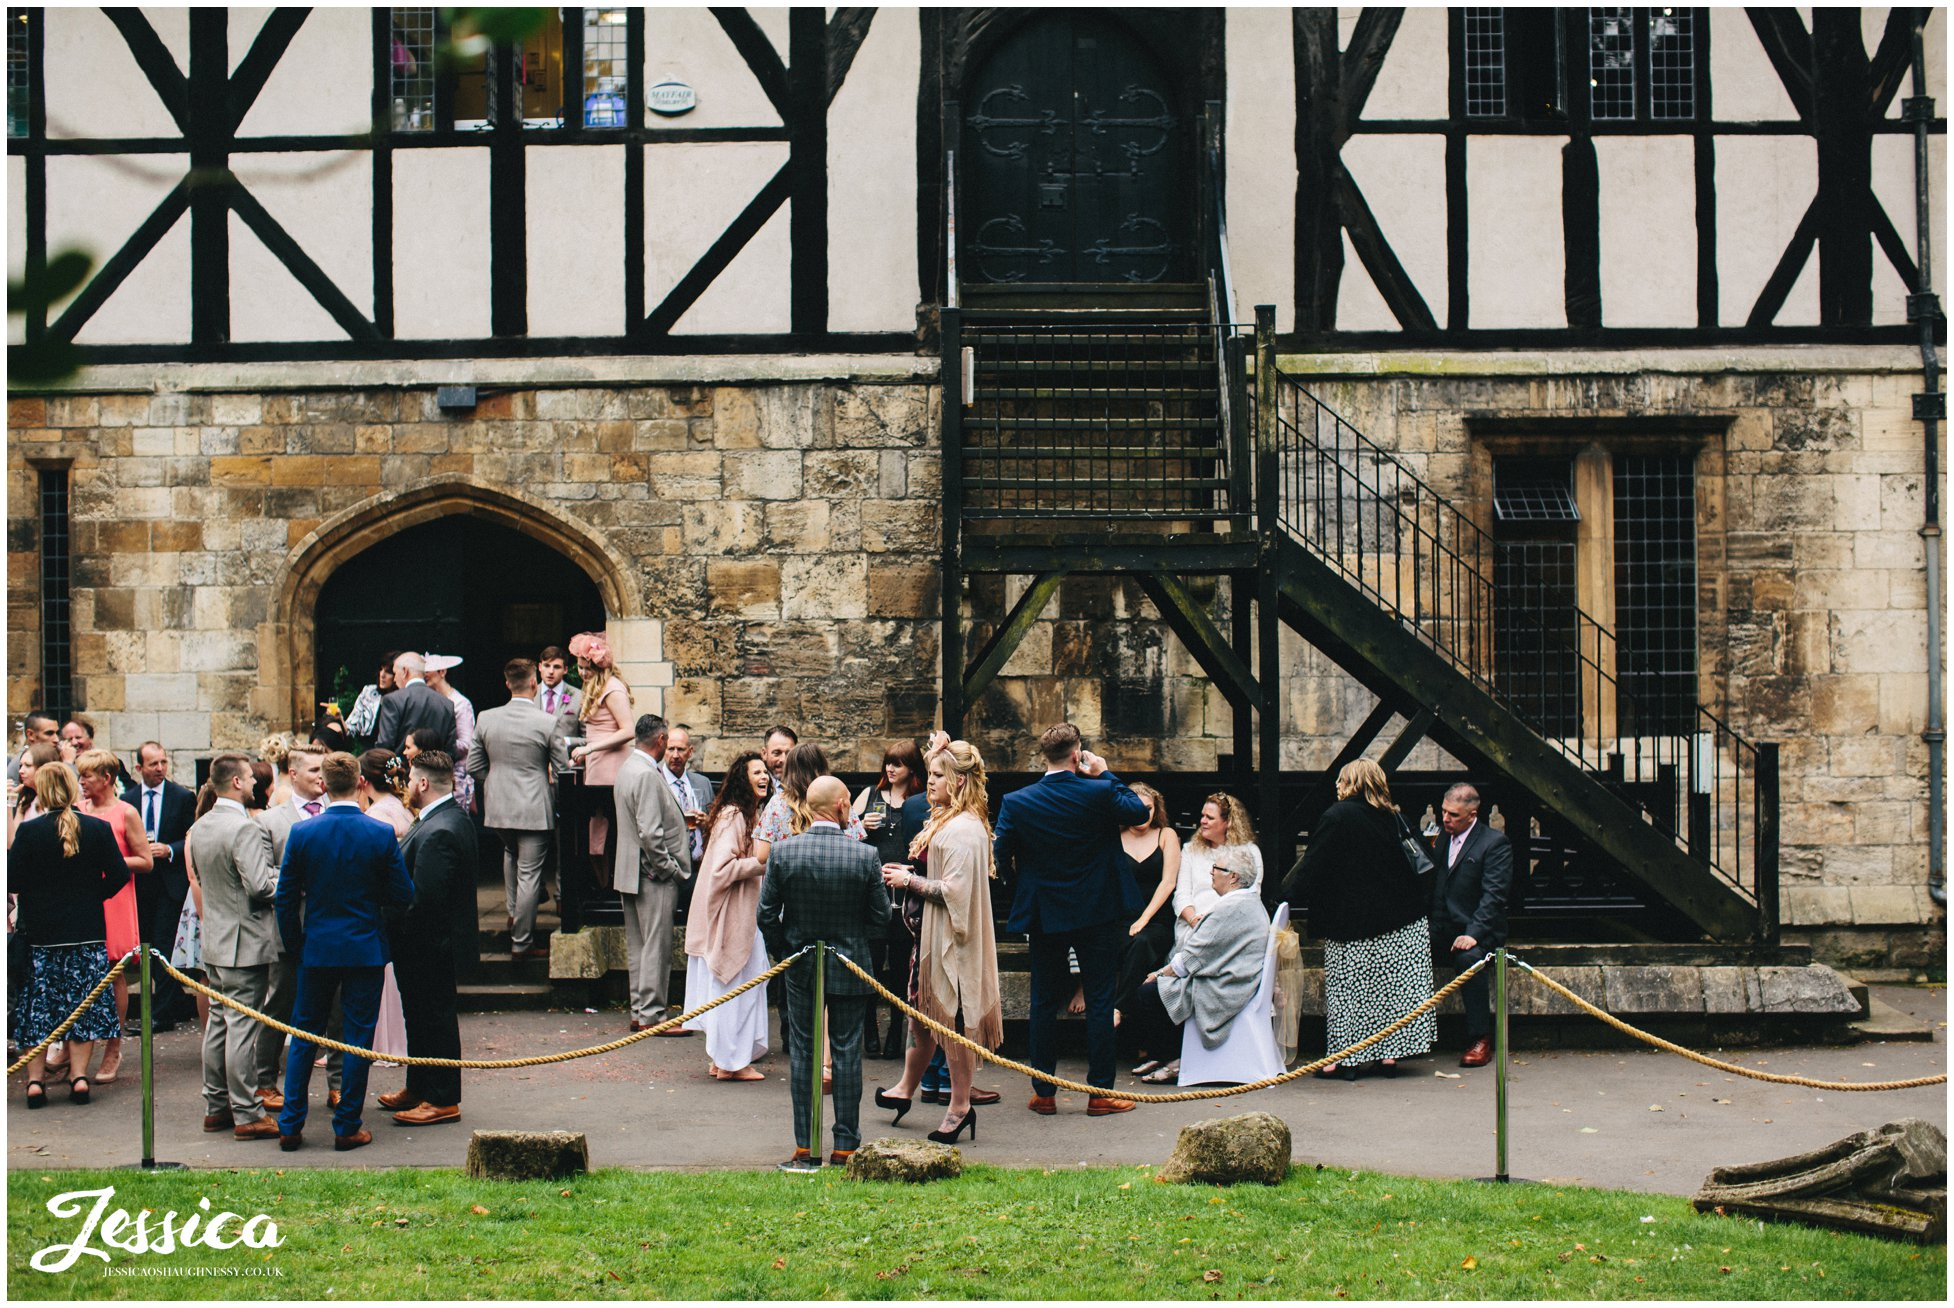 guests celebrate the marriage outside the hospitium in york